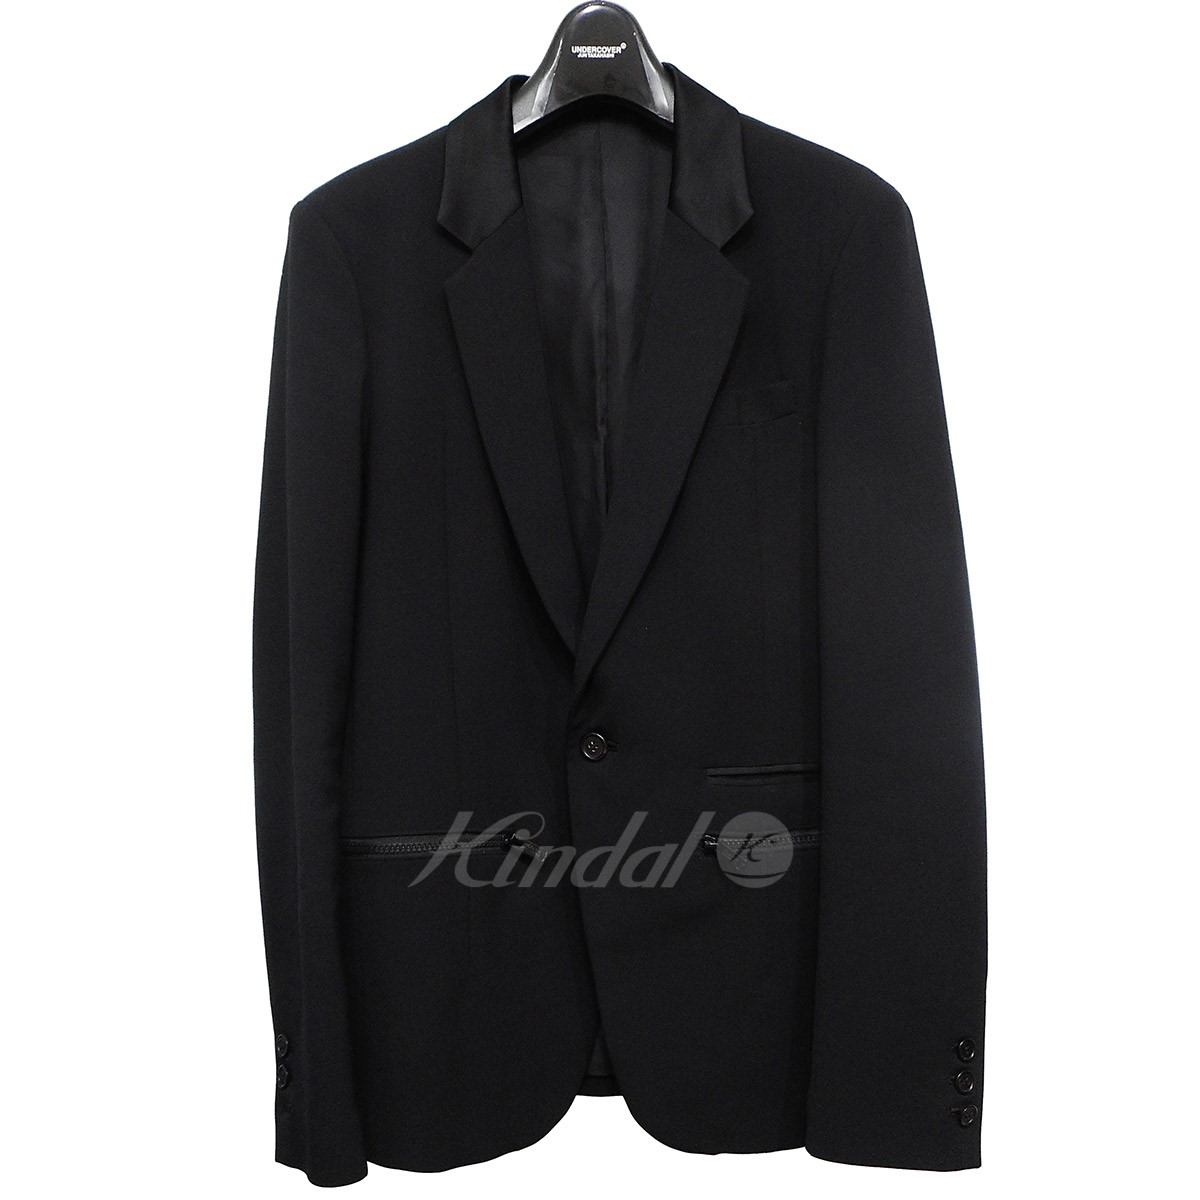 【中古】UNDER COVER 18SS DON'T WALK AWAY INSILENCE ZIPUPジャケット 【送料無料】 【001591】 【KIND1550】